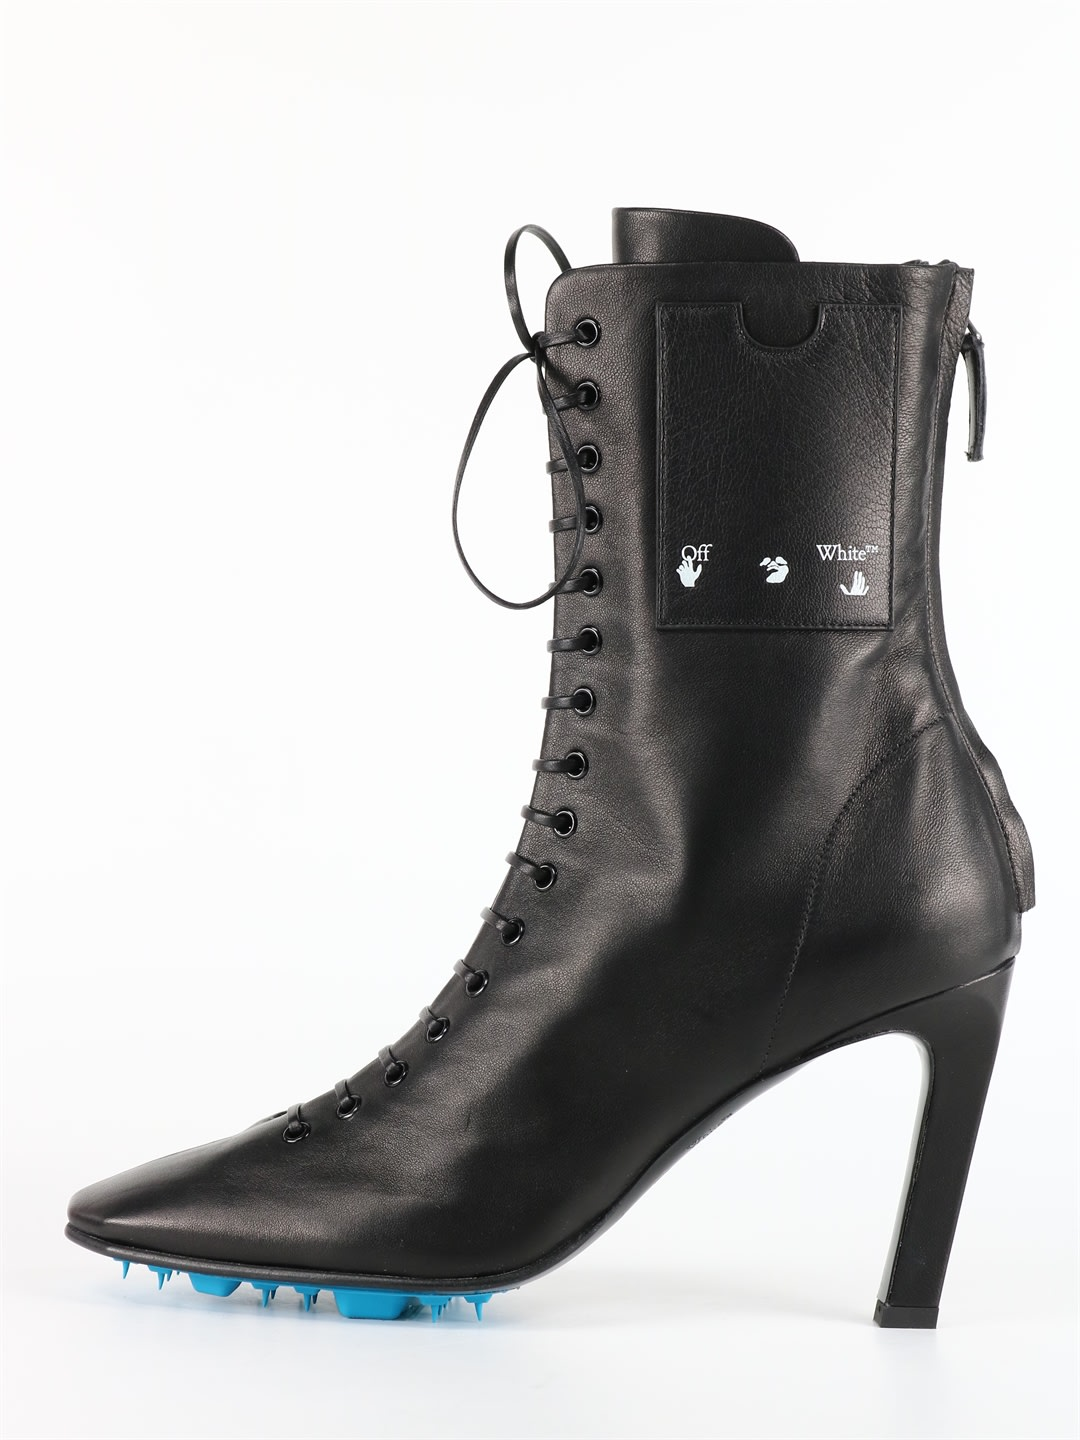 Off-White Leather Ankle Boots Black